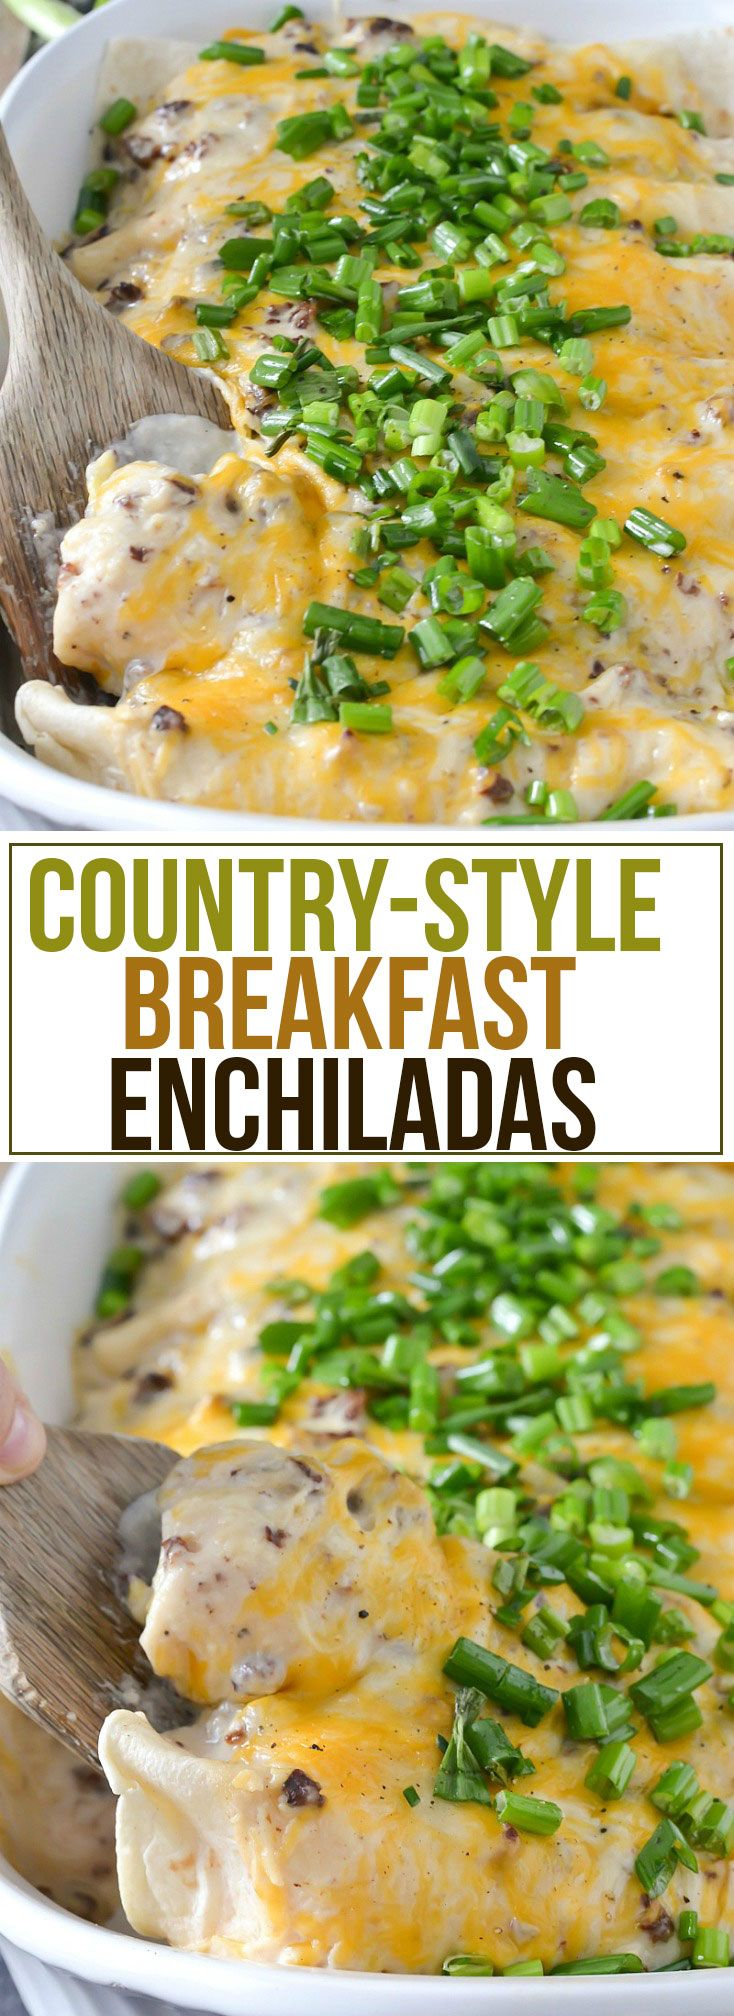 These Country-Style Breakfast Enchiladas are loaded with eggs, onions, peppers, cheese, crispy hash browns and smothered in a creamy sausage gravy sauce!